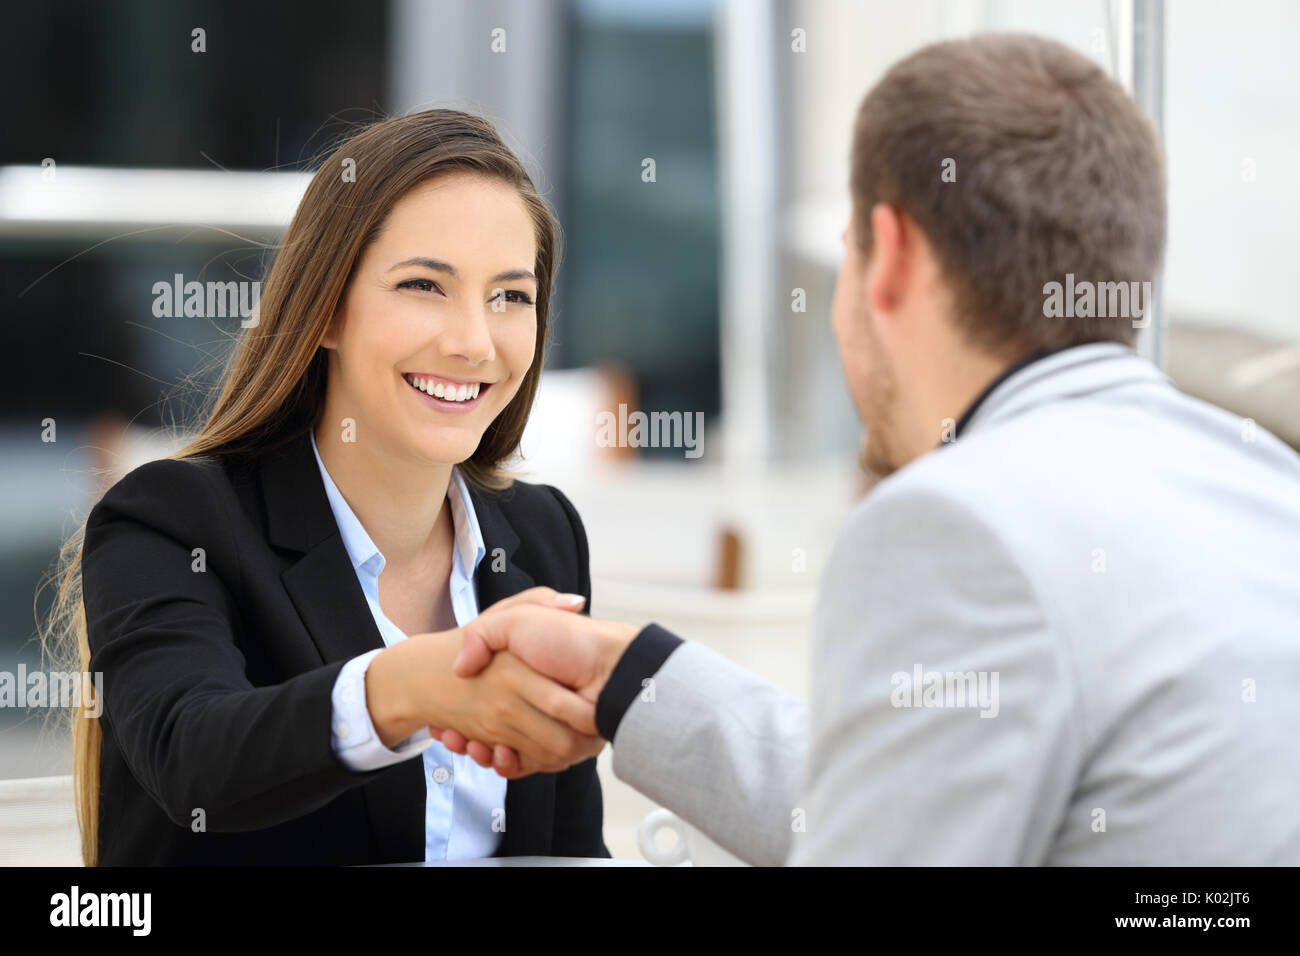 Two executives meeting and handshaking sitting in a coffee shop - Stock Image